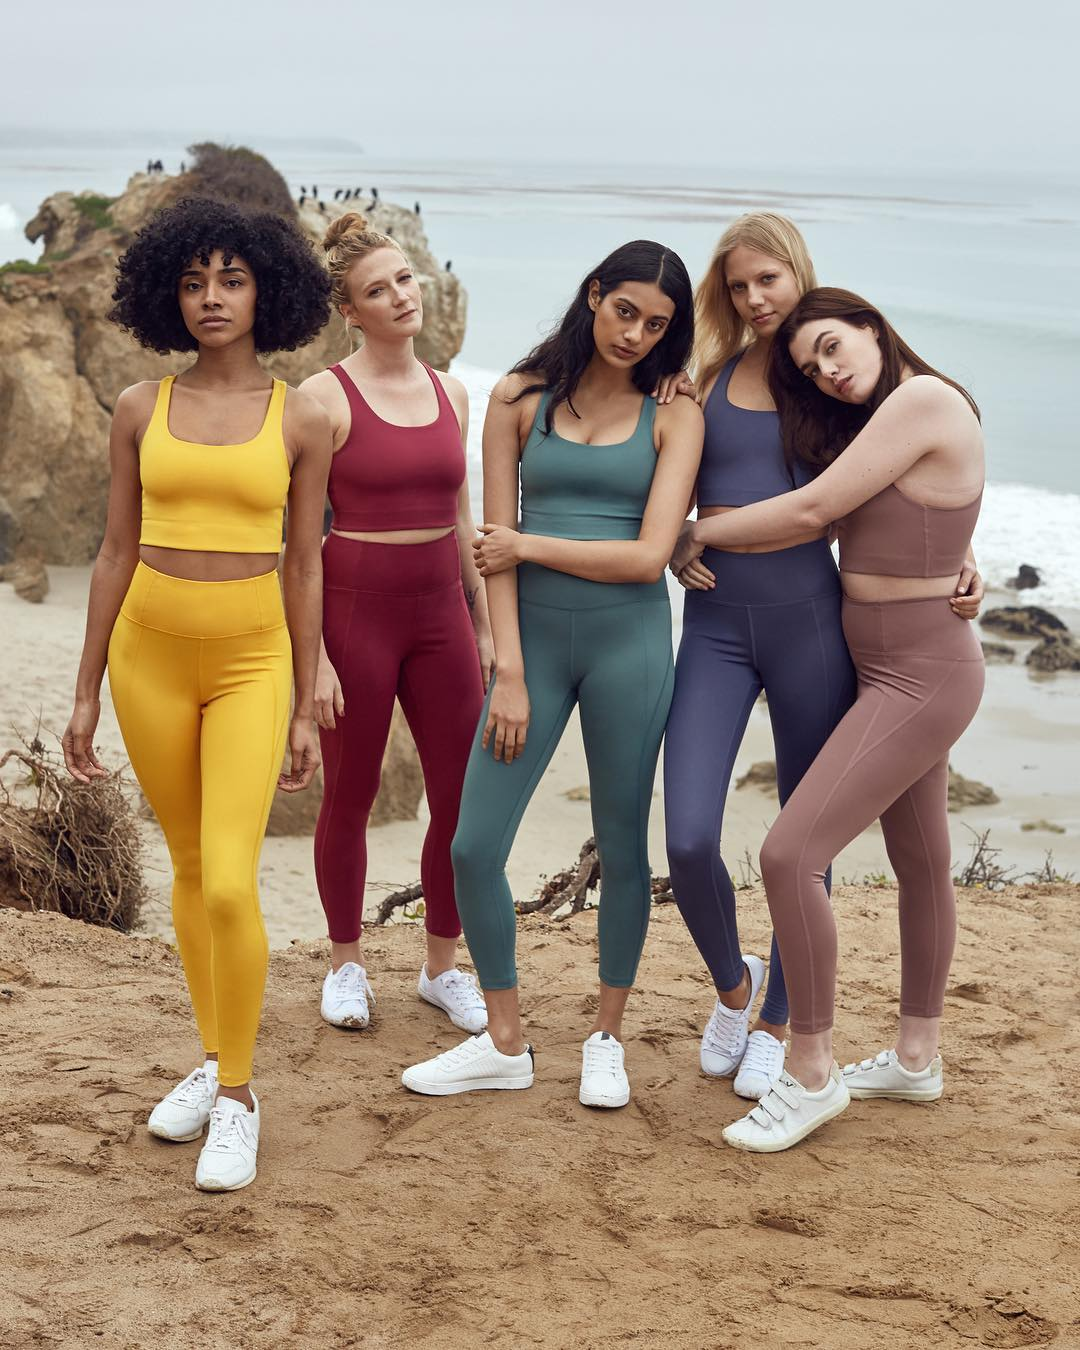 5 women standing on the beach wearing different coloured activewear